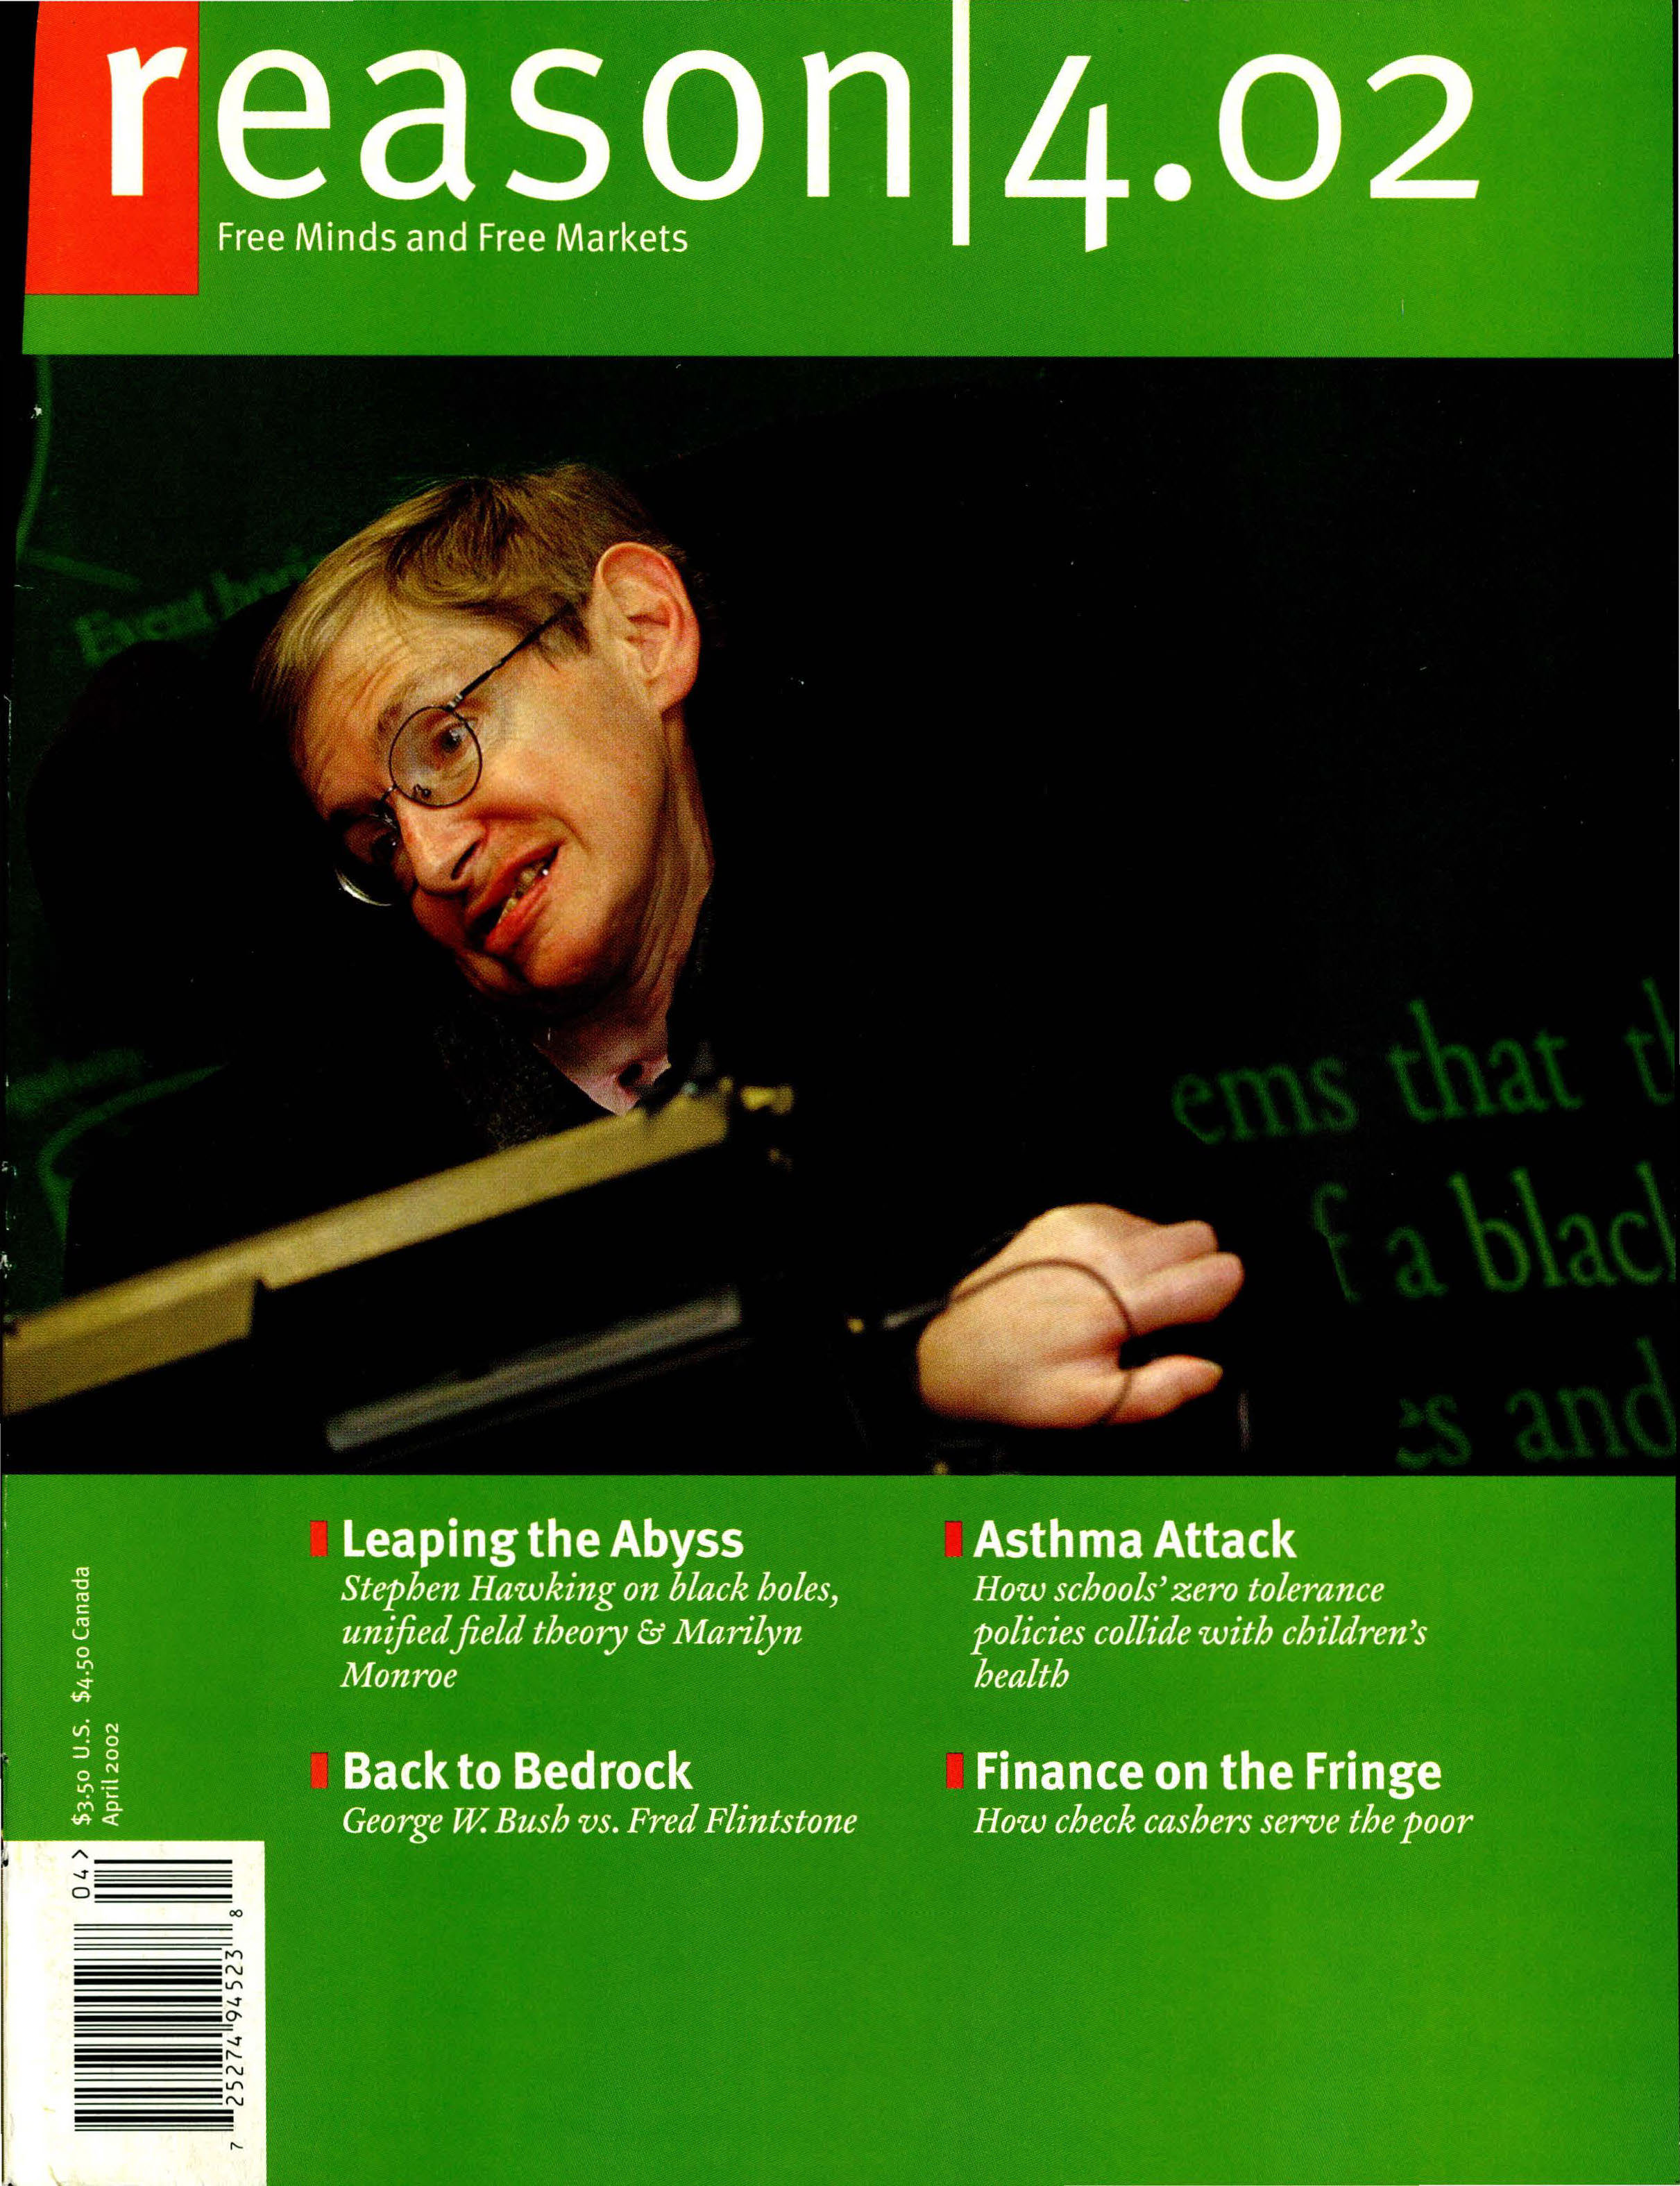 Reason Magazine, April 2002 cover image